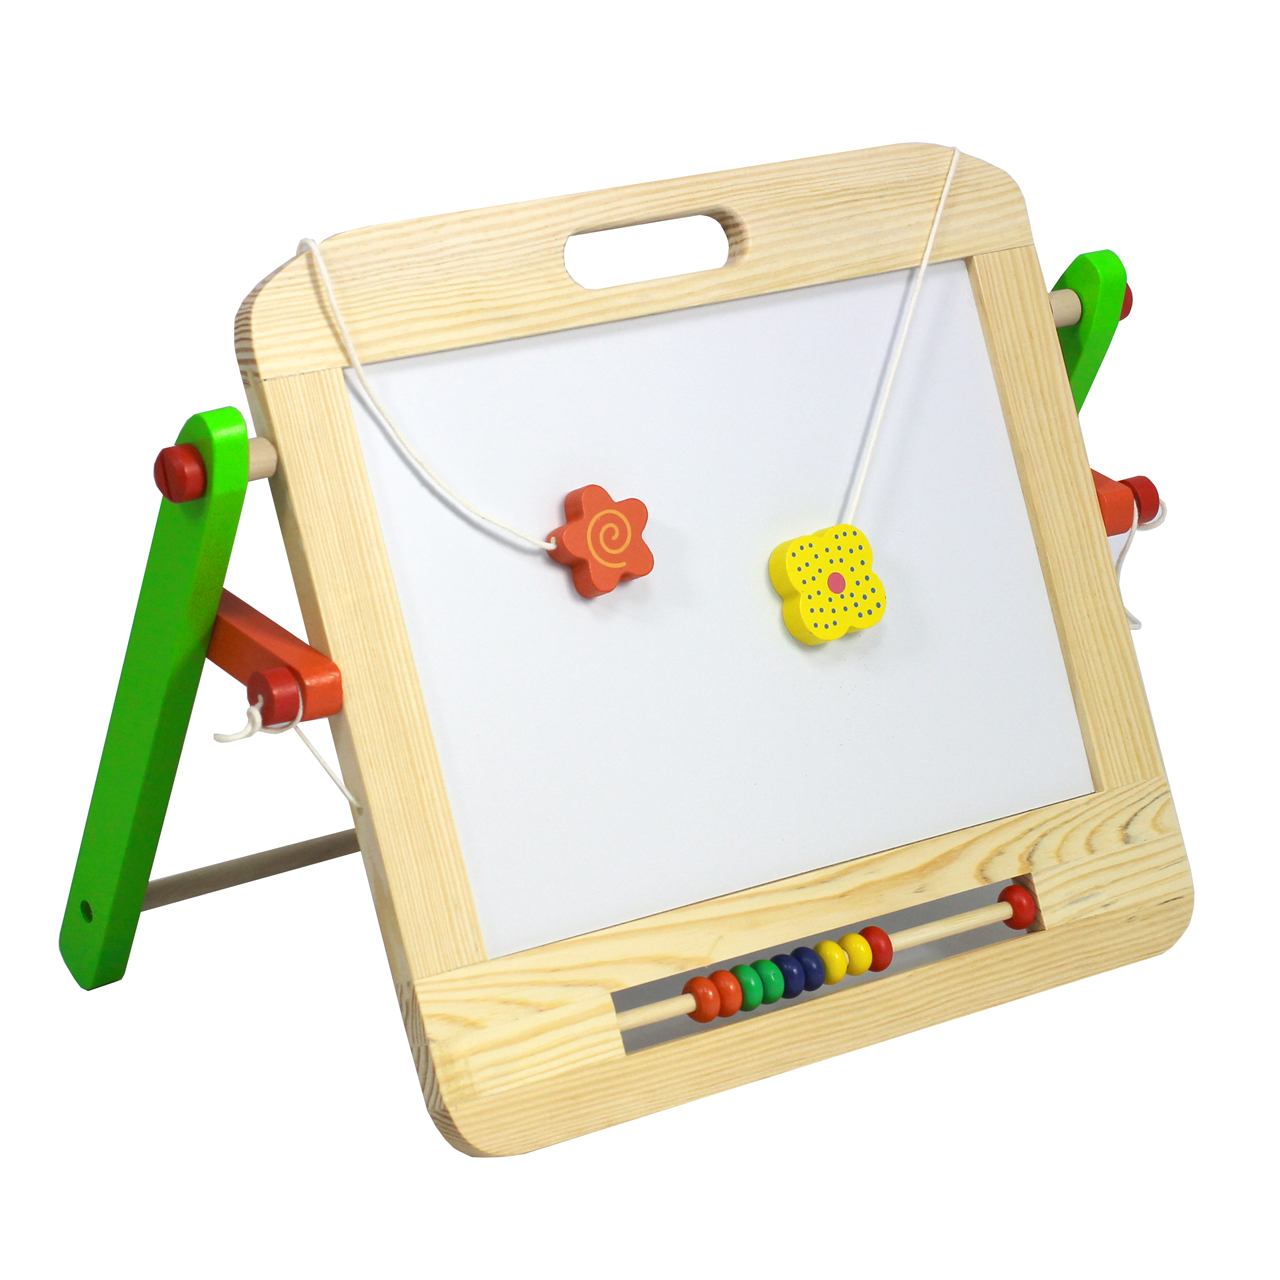 2 in 1 options, one side for use with erasable pens. Quick and easy to wipe clean.